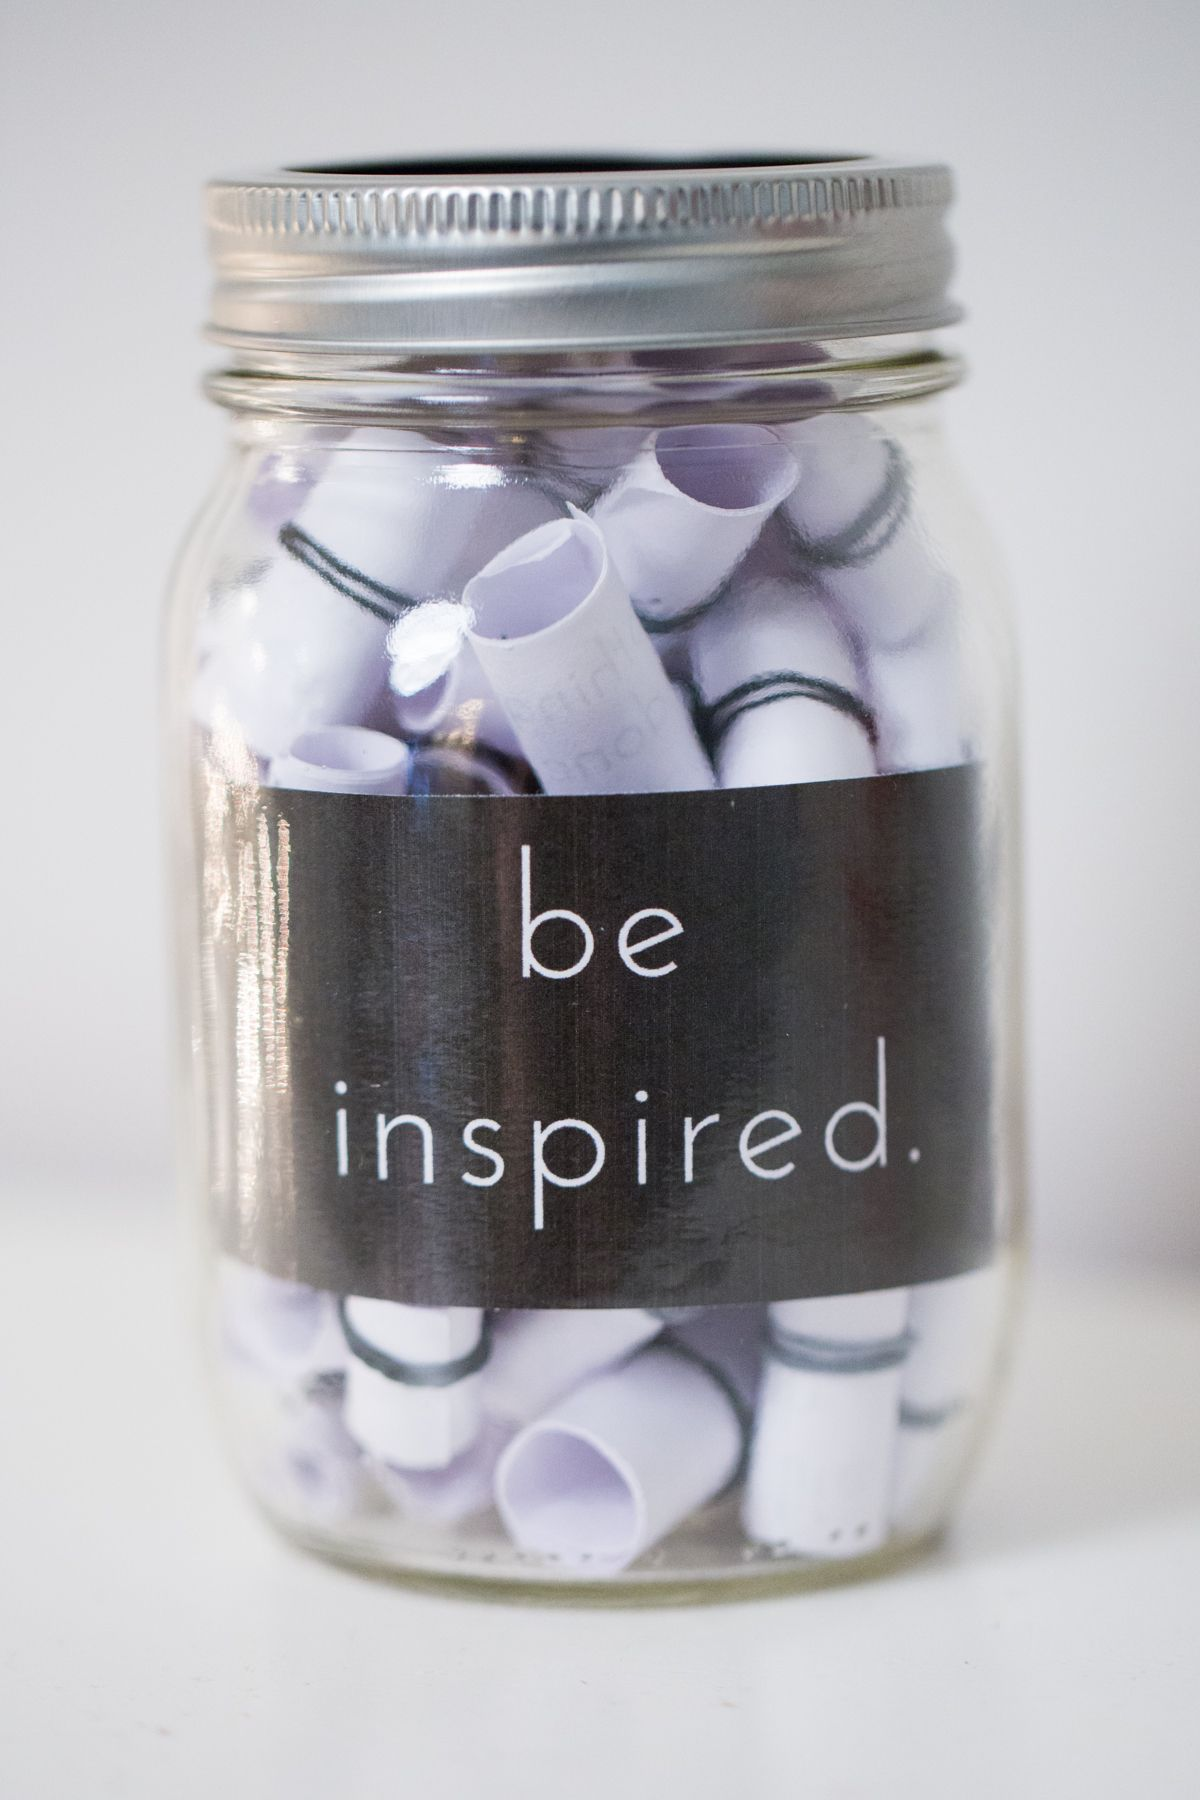 Quotes Jar Be Inspired52 Inspirational Quotes In A Jarbolandia On Etsy